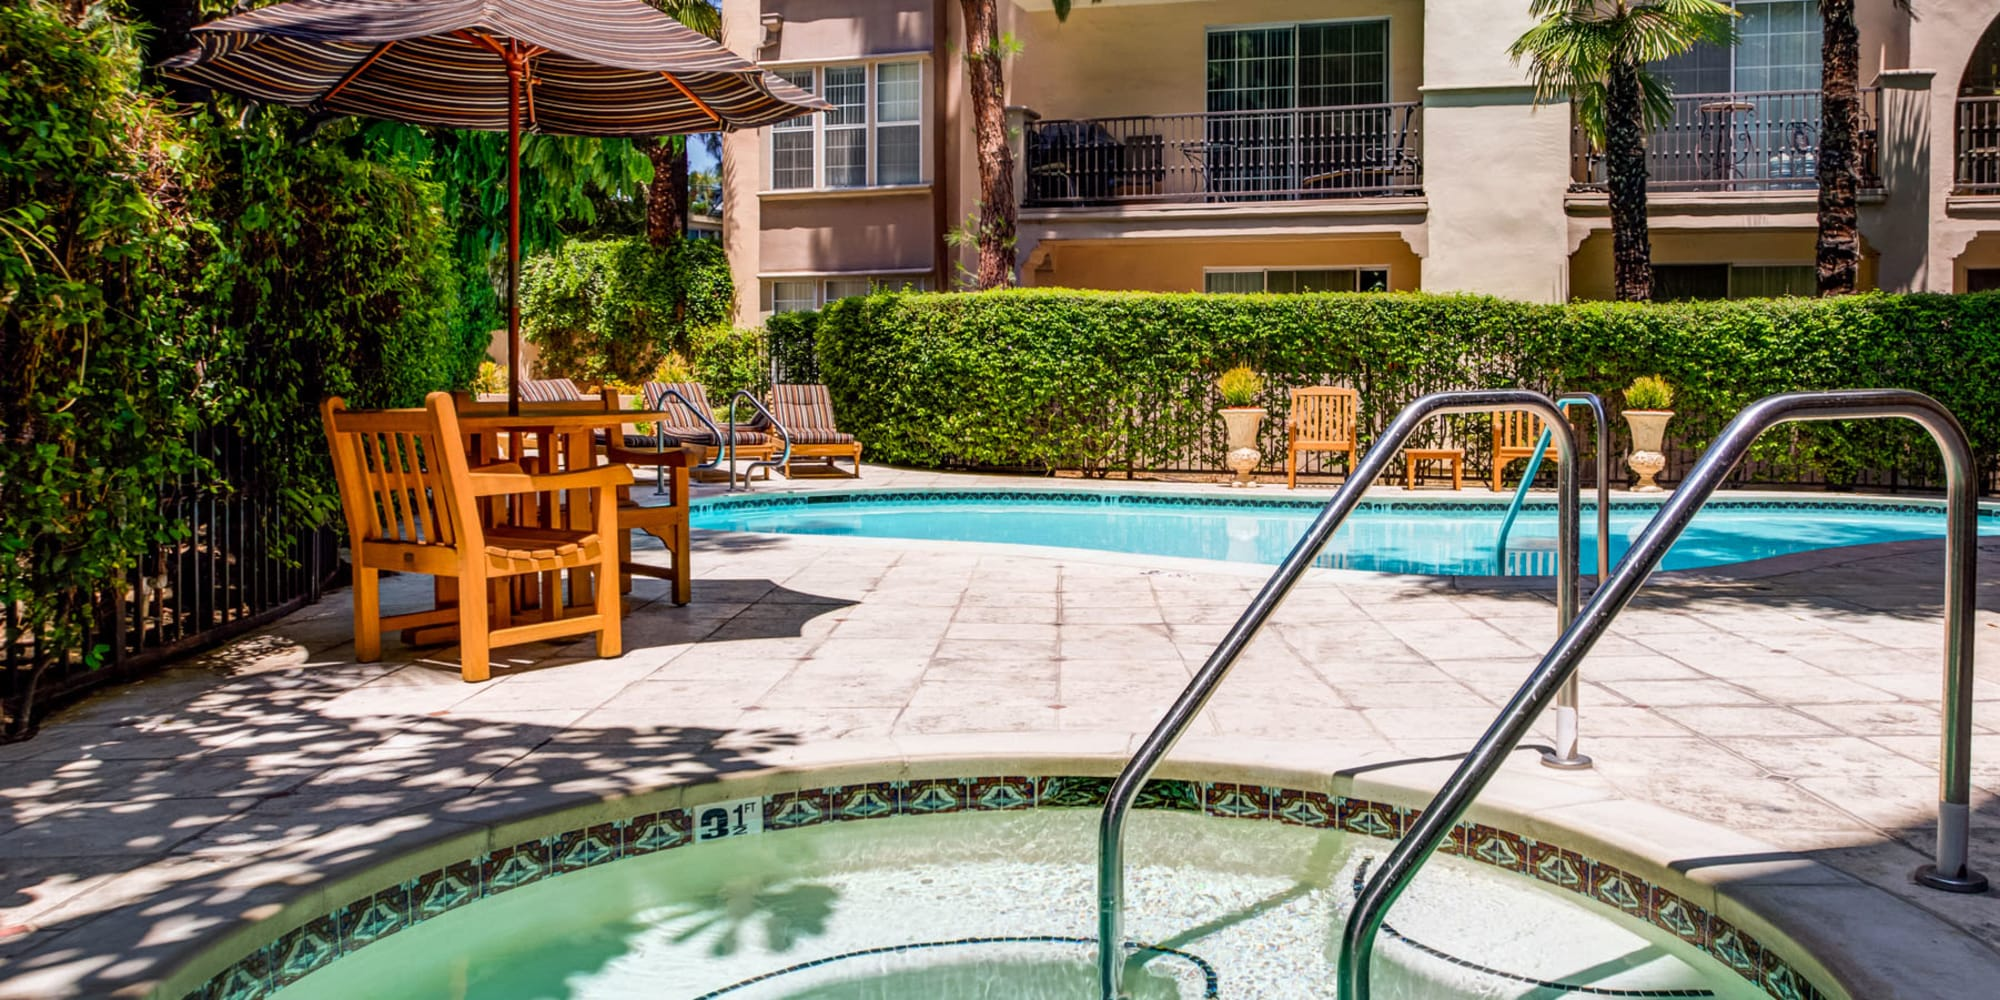 Swimming pool and spa area surrounded by lush landscaping and great places to relax at L'Estancia in Studio City, California